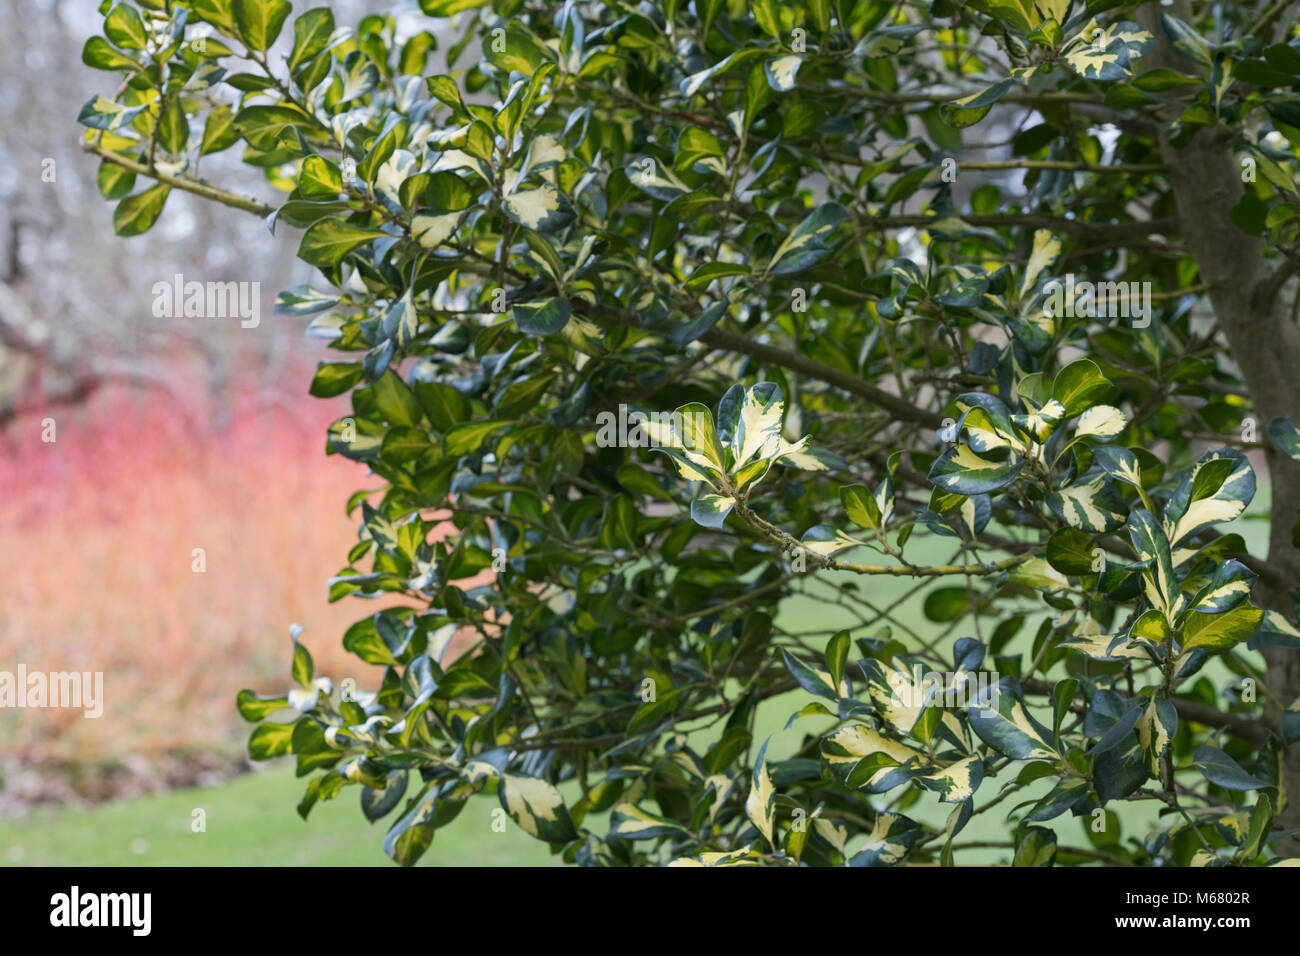 Ilex x altaclerensis 'Ripley Gold'. Holly 'Ripley Gold' feuillage en février. UK Photo Stock